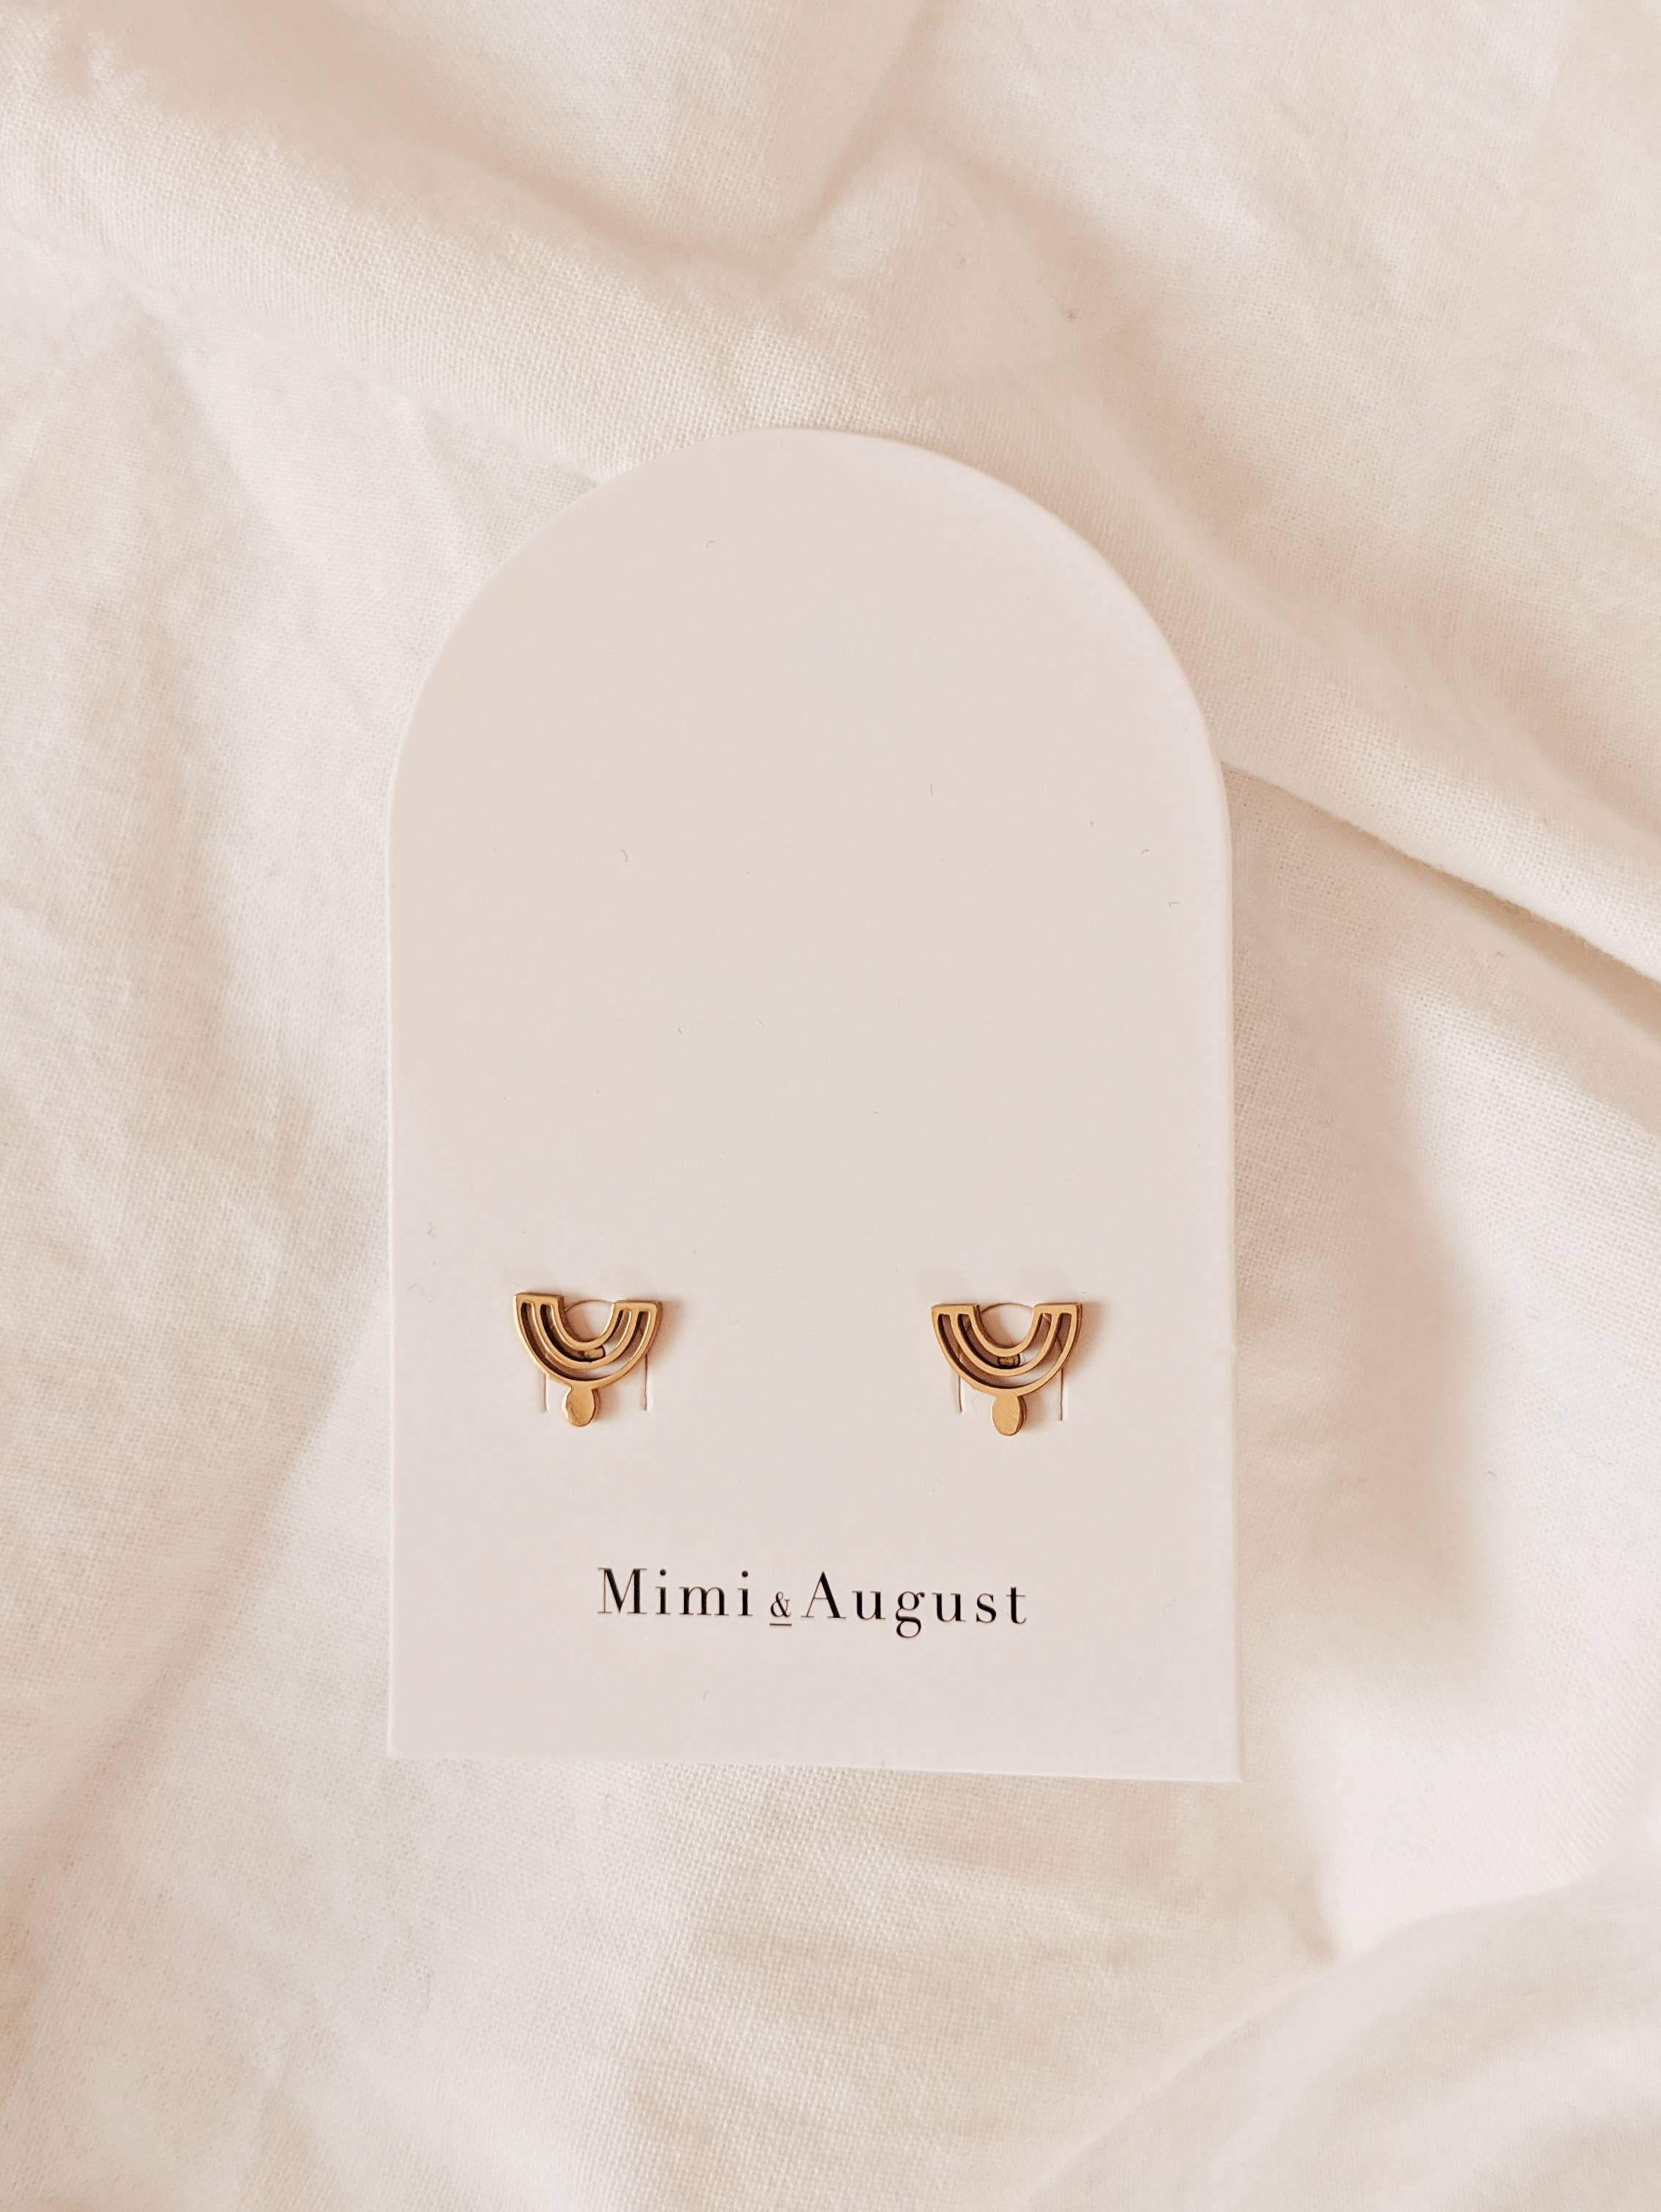 Mimi & August - Reverse Rainbow Stud Earrings - Earrings - Mimi & August - MOD&SOUL